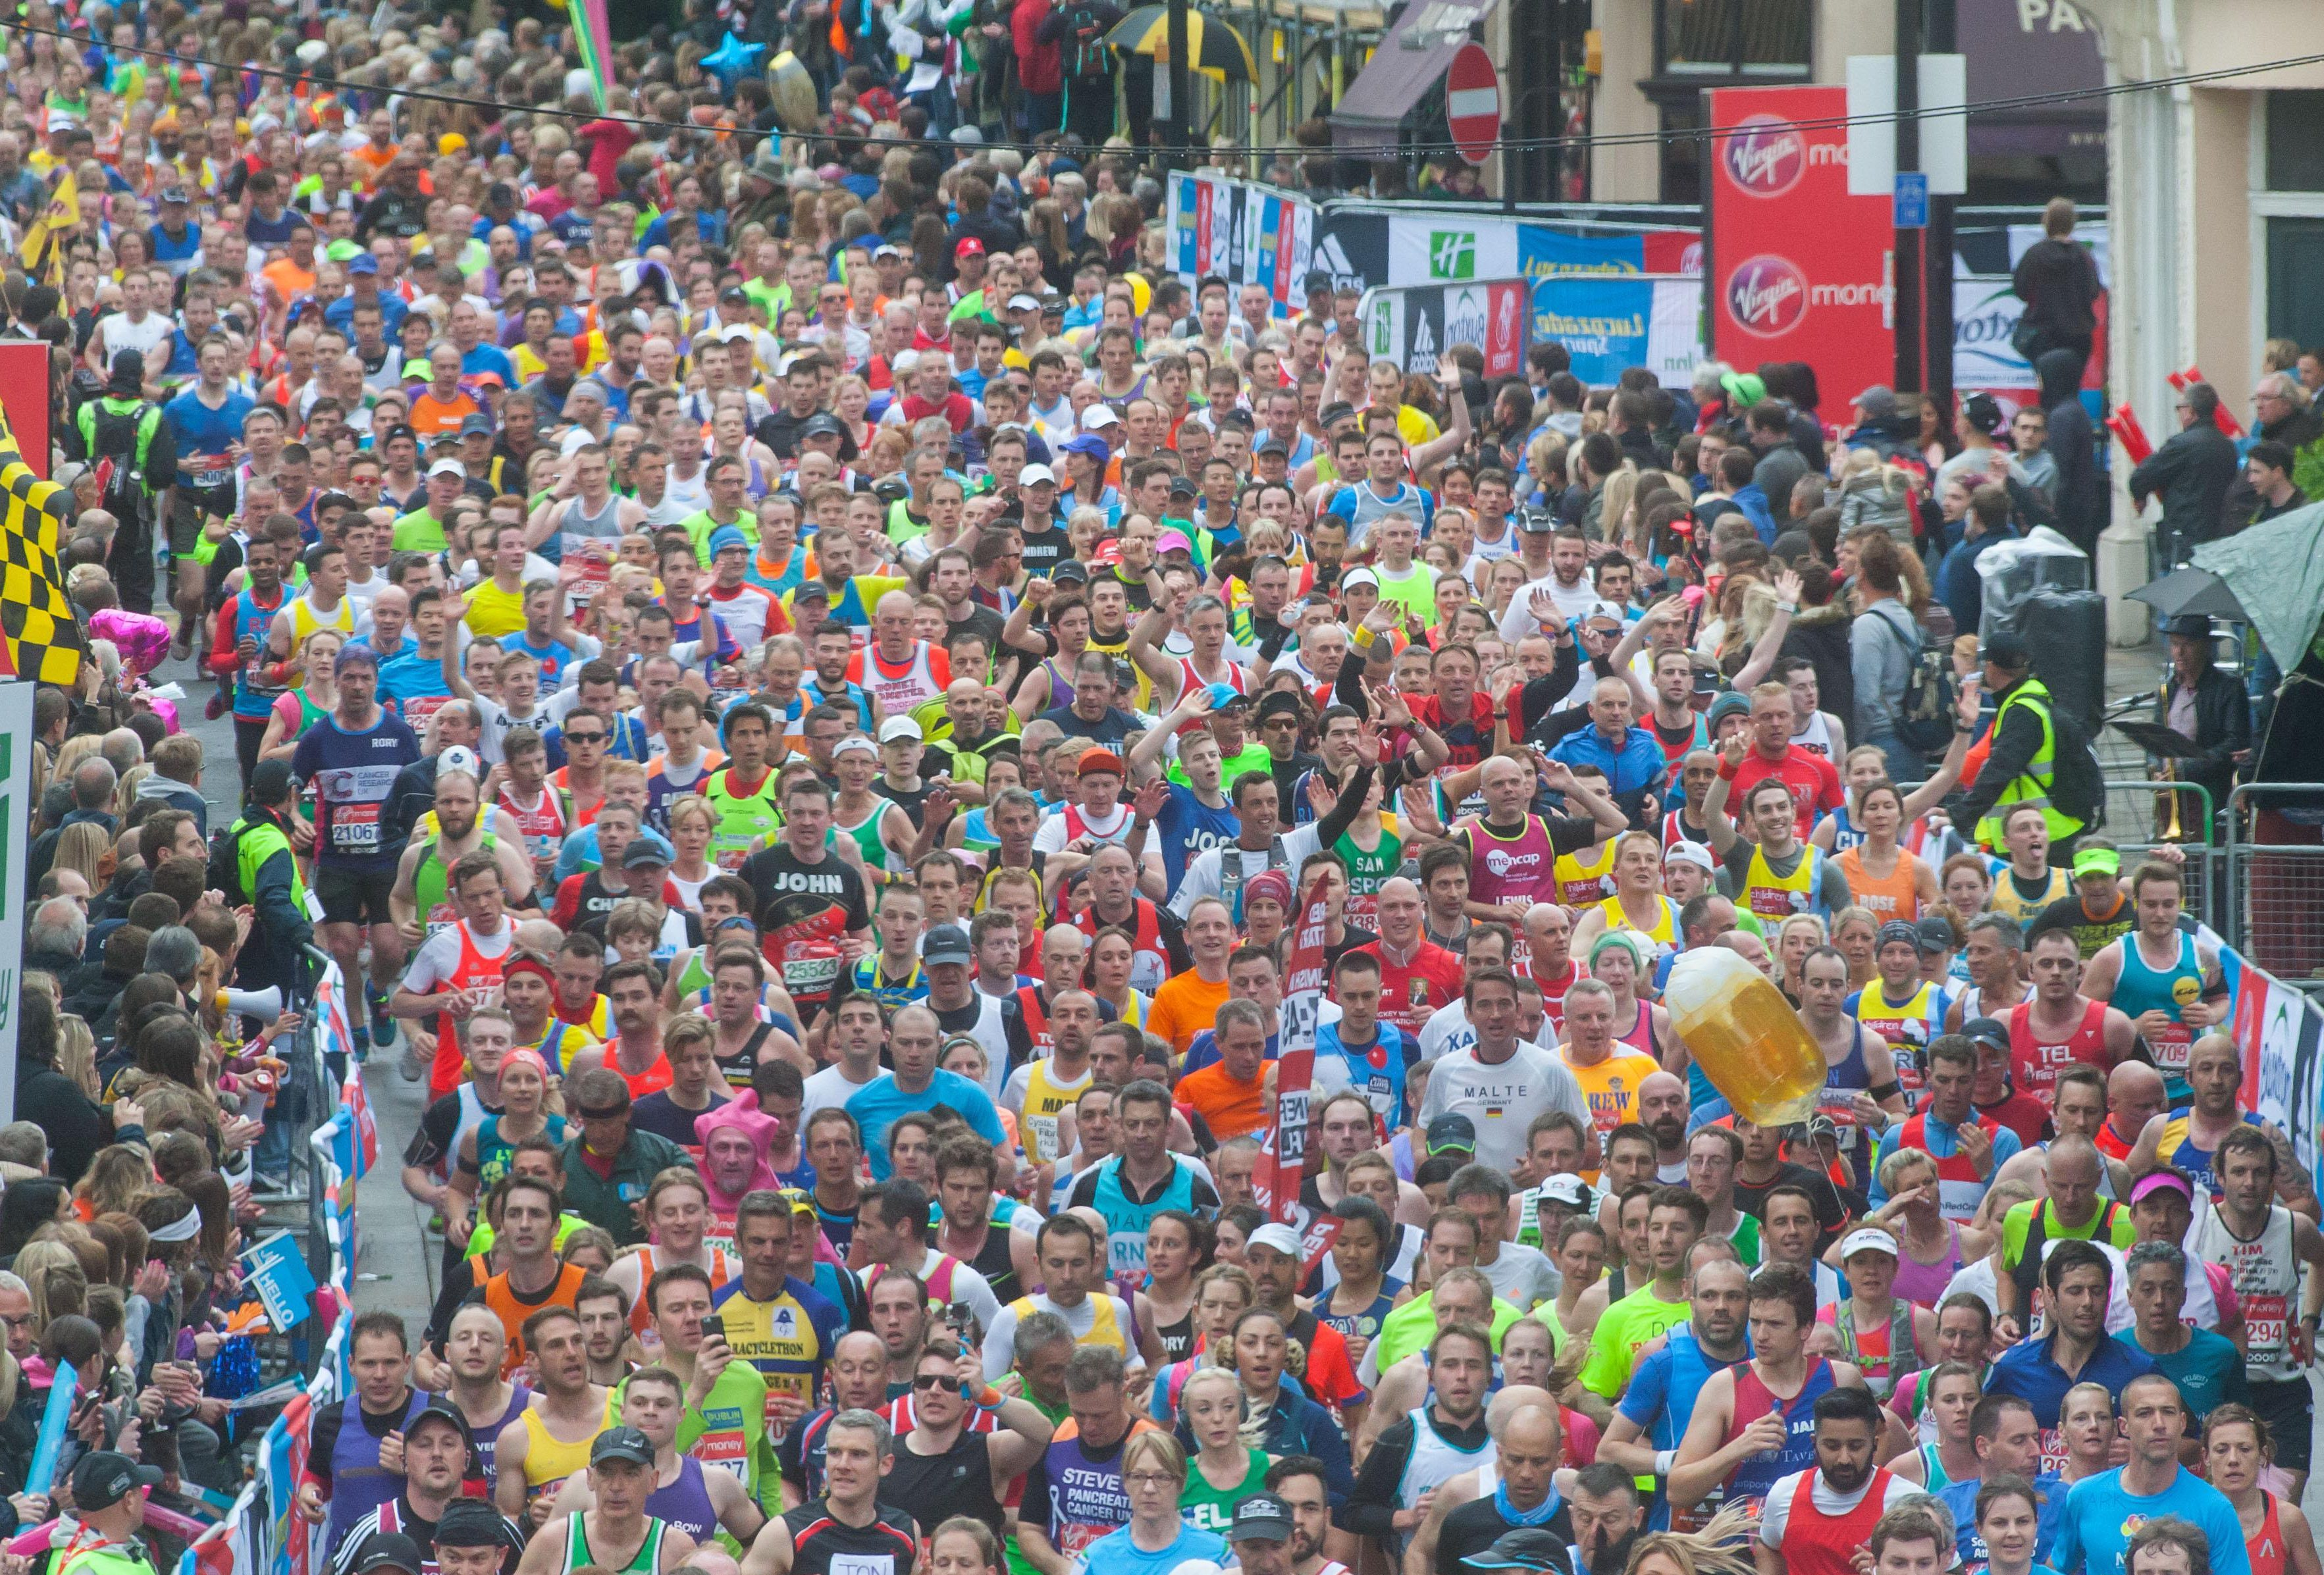 It's a chaotic scene around London when the Marathon starts - but you can keep up with how your loved ones are doing with the special app